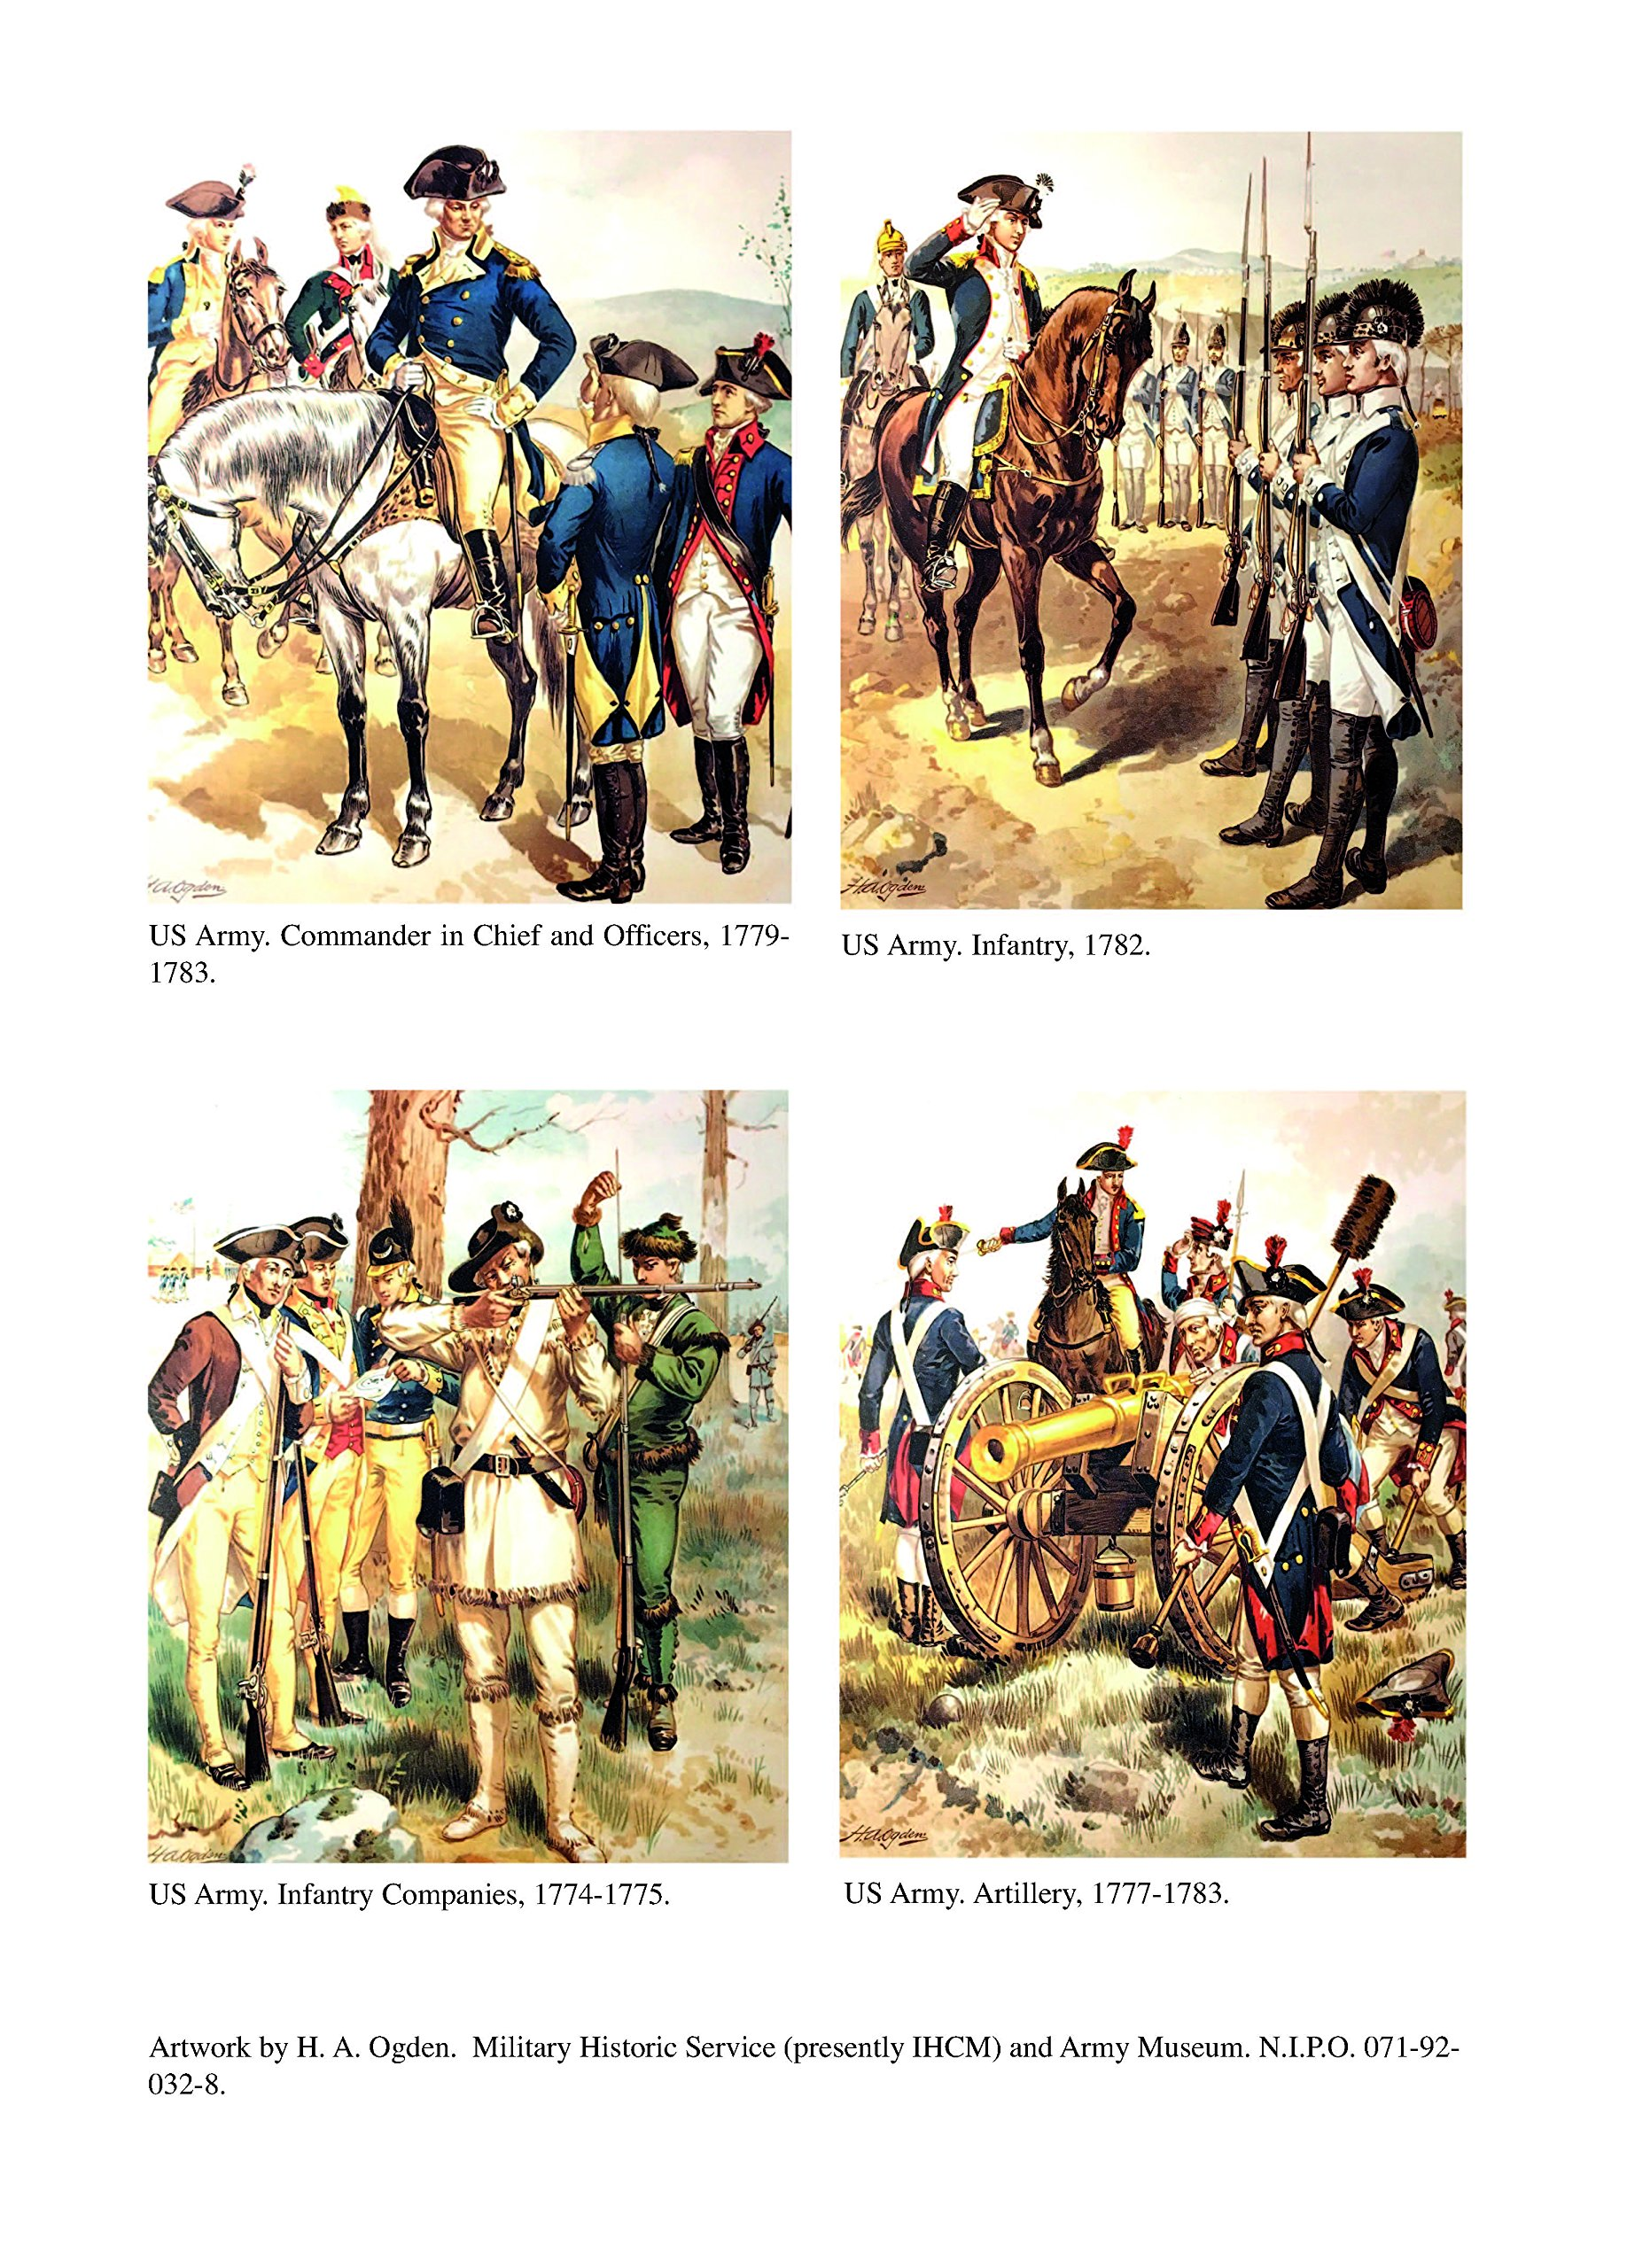 Galvez and Spain in the American Revolution: Guillermo Calleja Leal, Gregorio Calleja Leal, Albatros Ediciones: 9788472743373: Amazon.com: Books